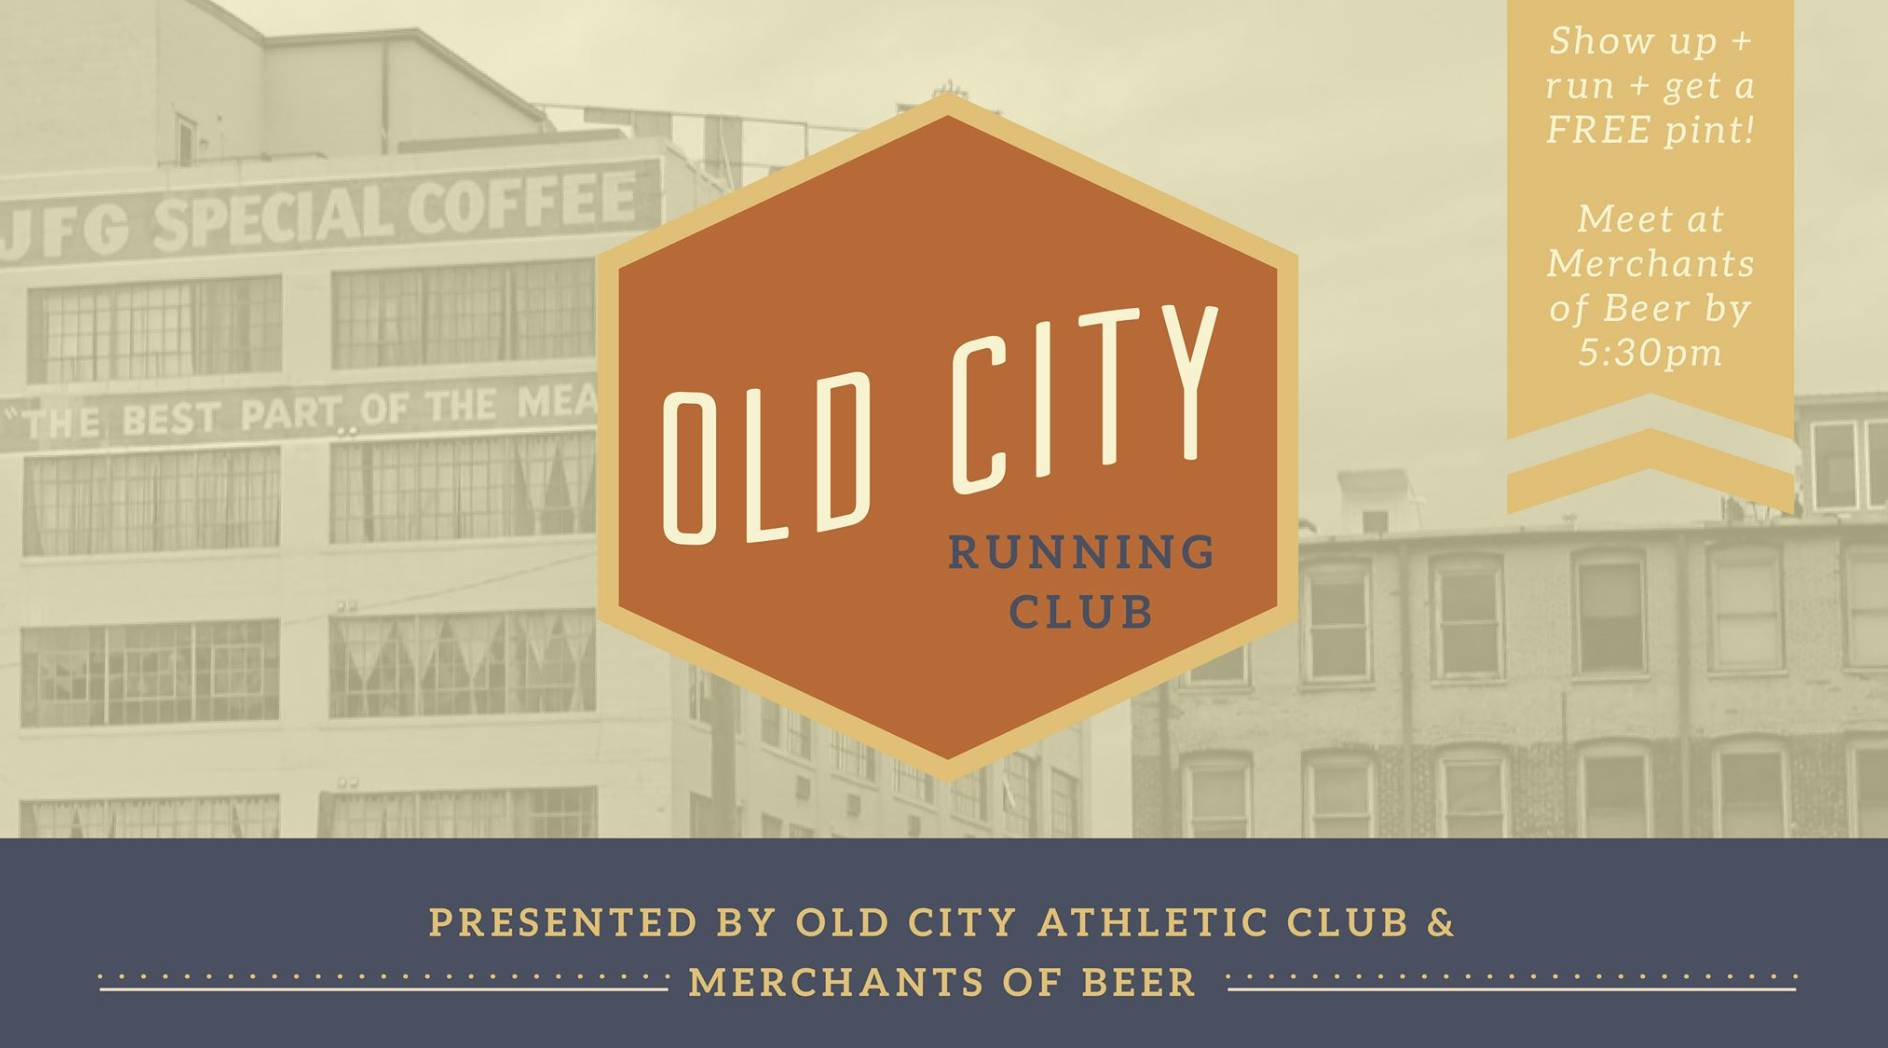 Old City Run Club